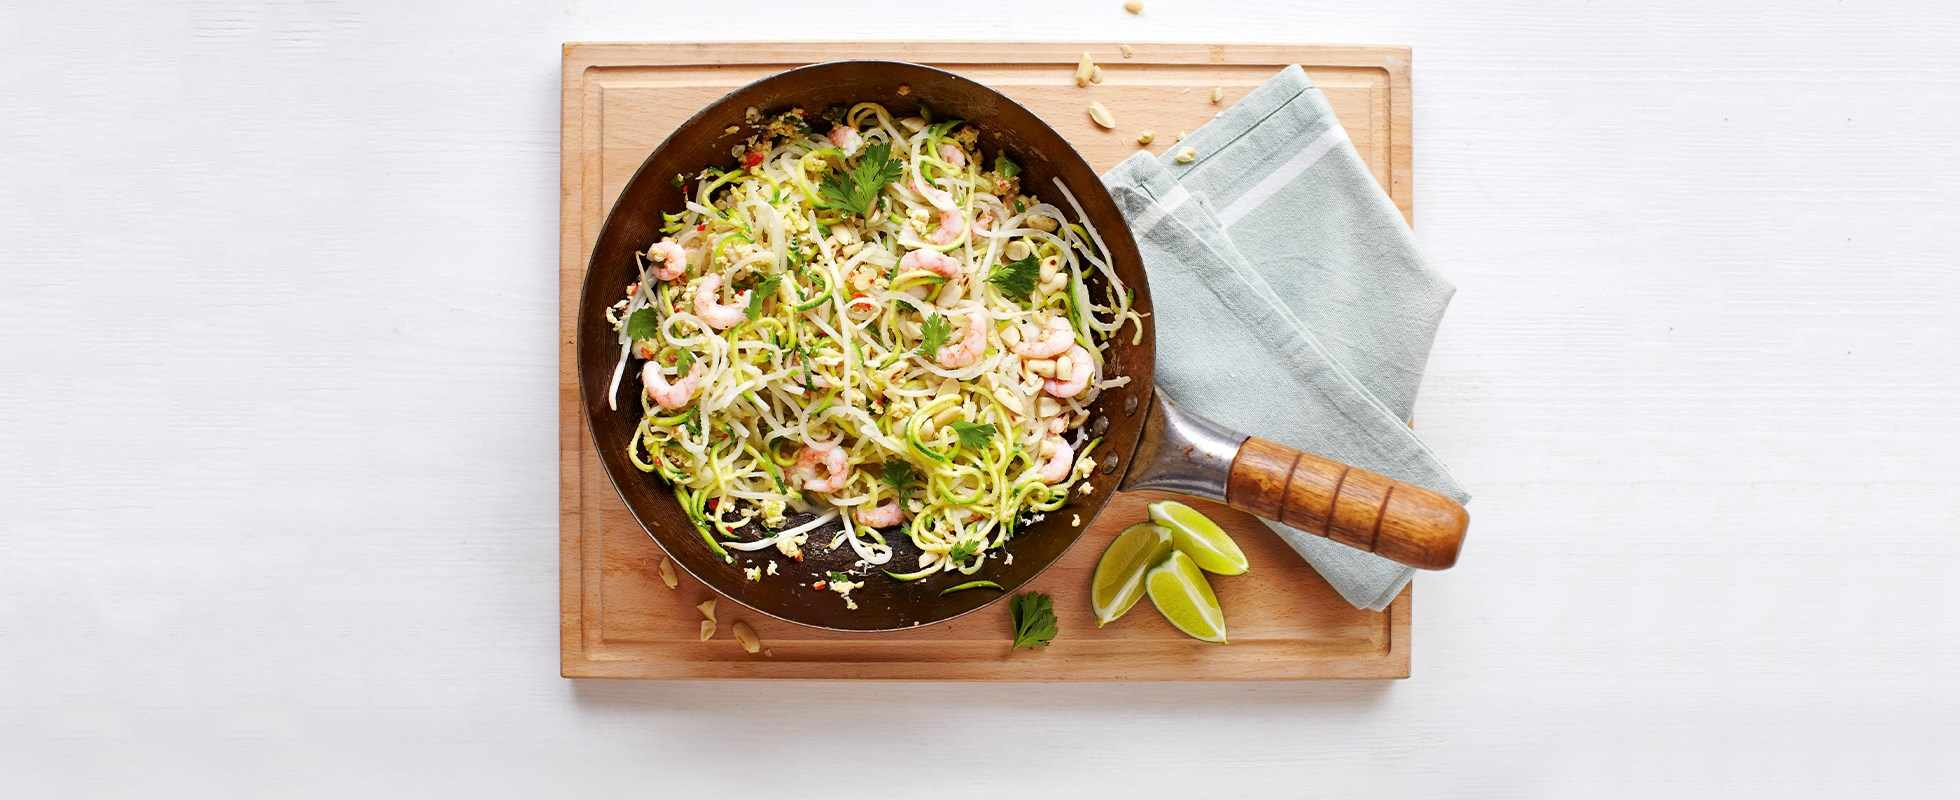 Frying pan full of healthy Pad Thai with prawns